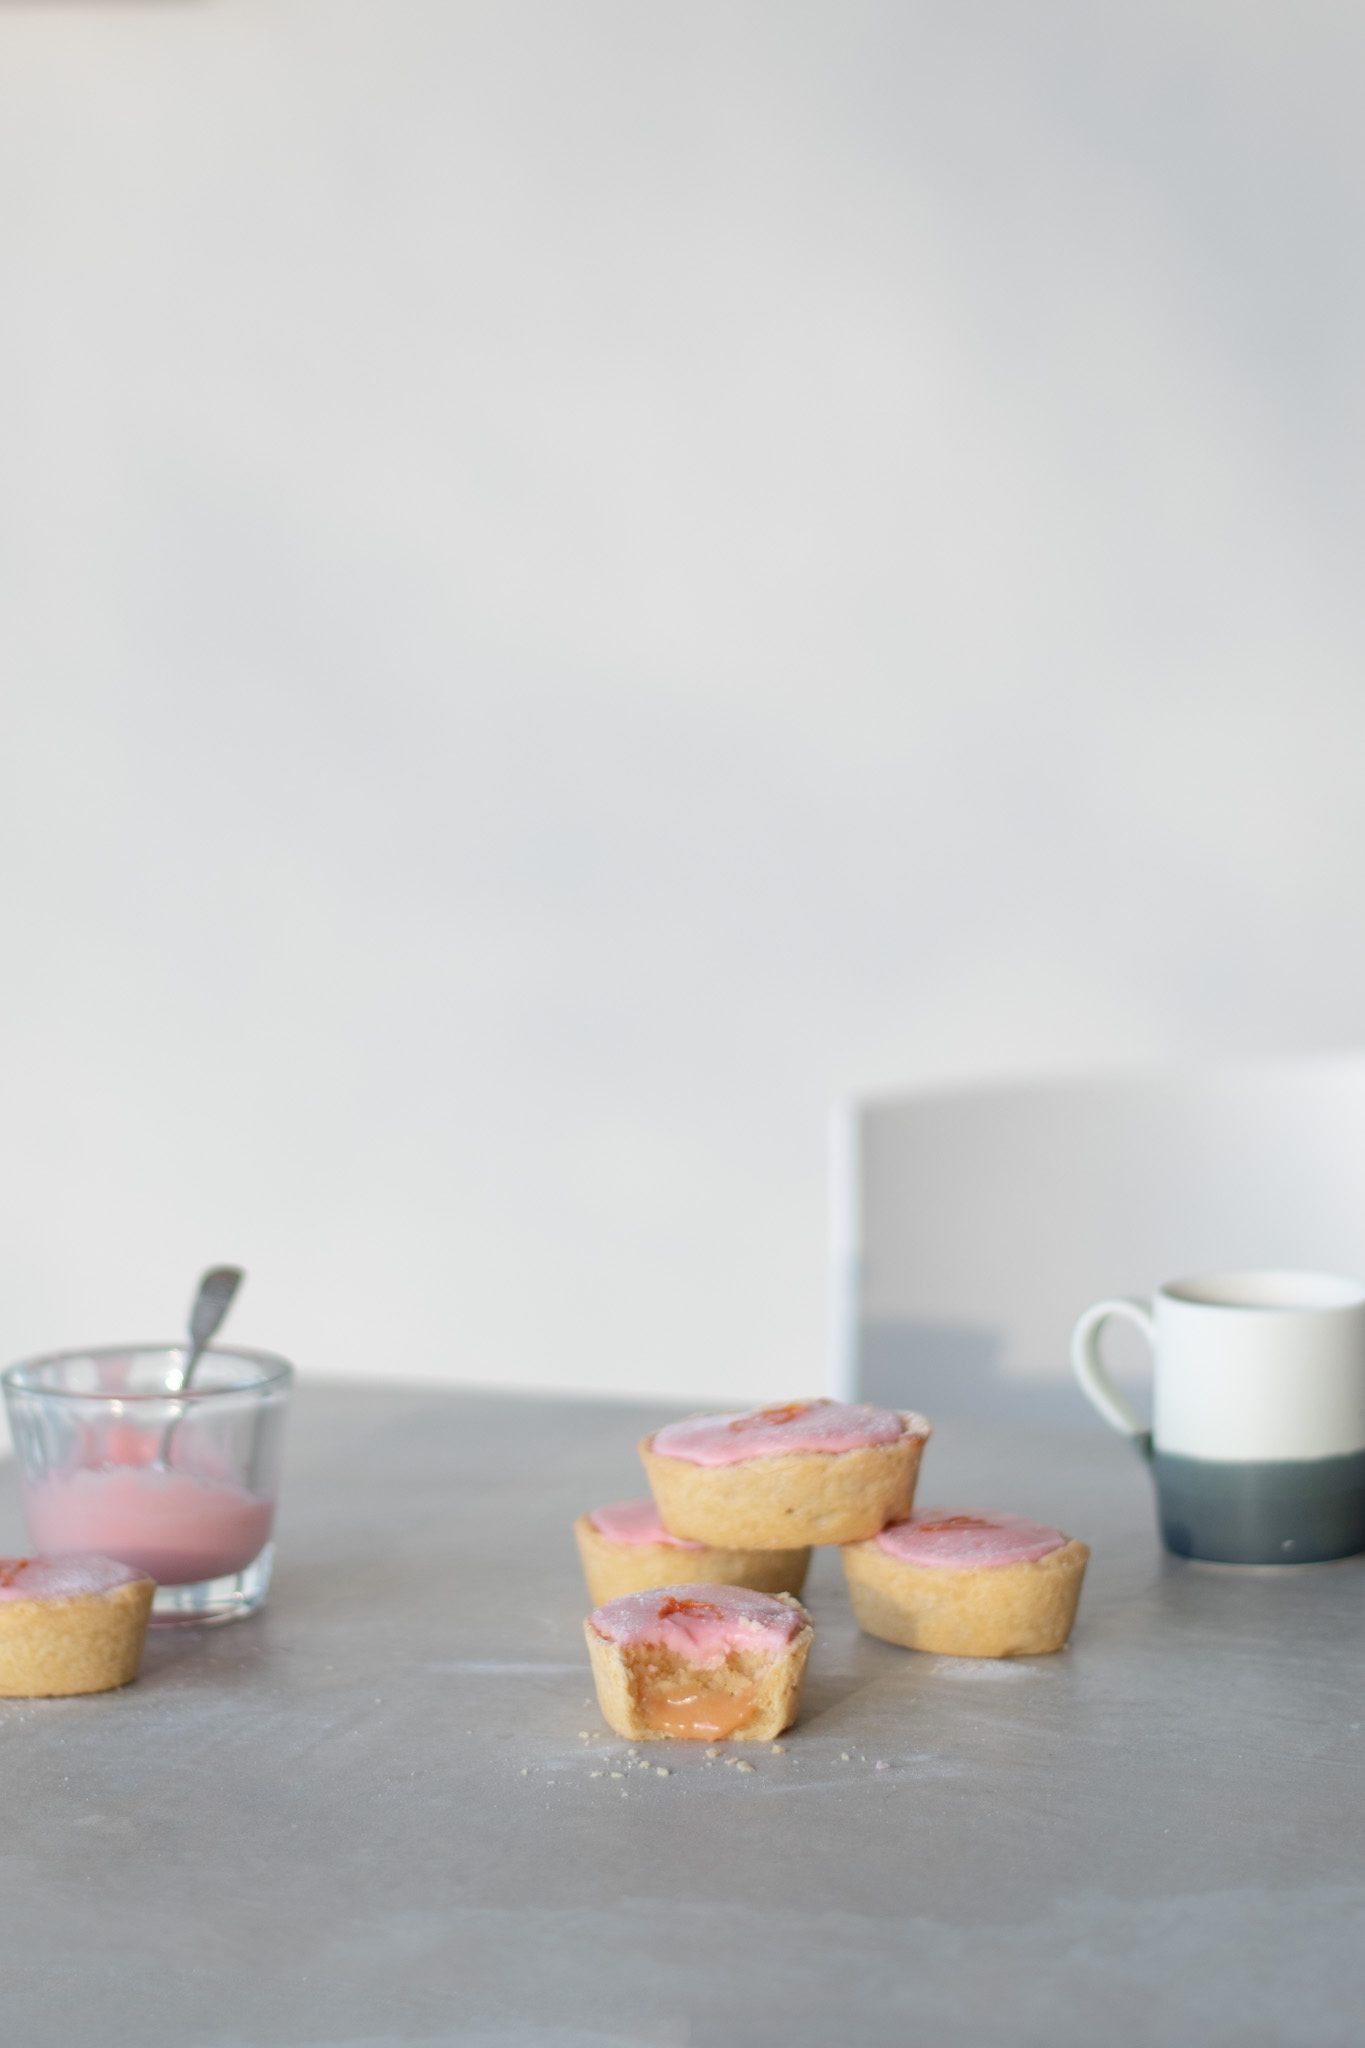 Mazariner (Swedish Almond Tarts)